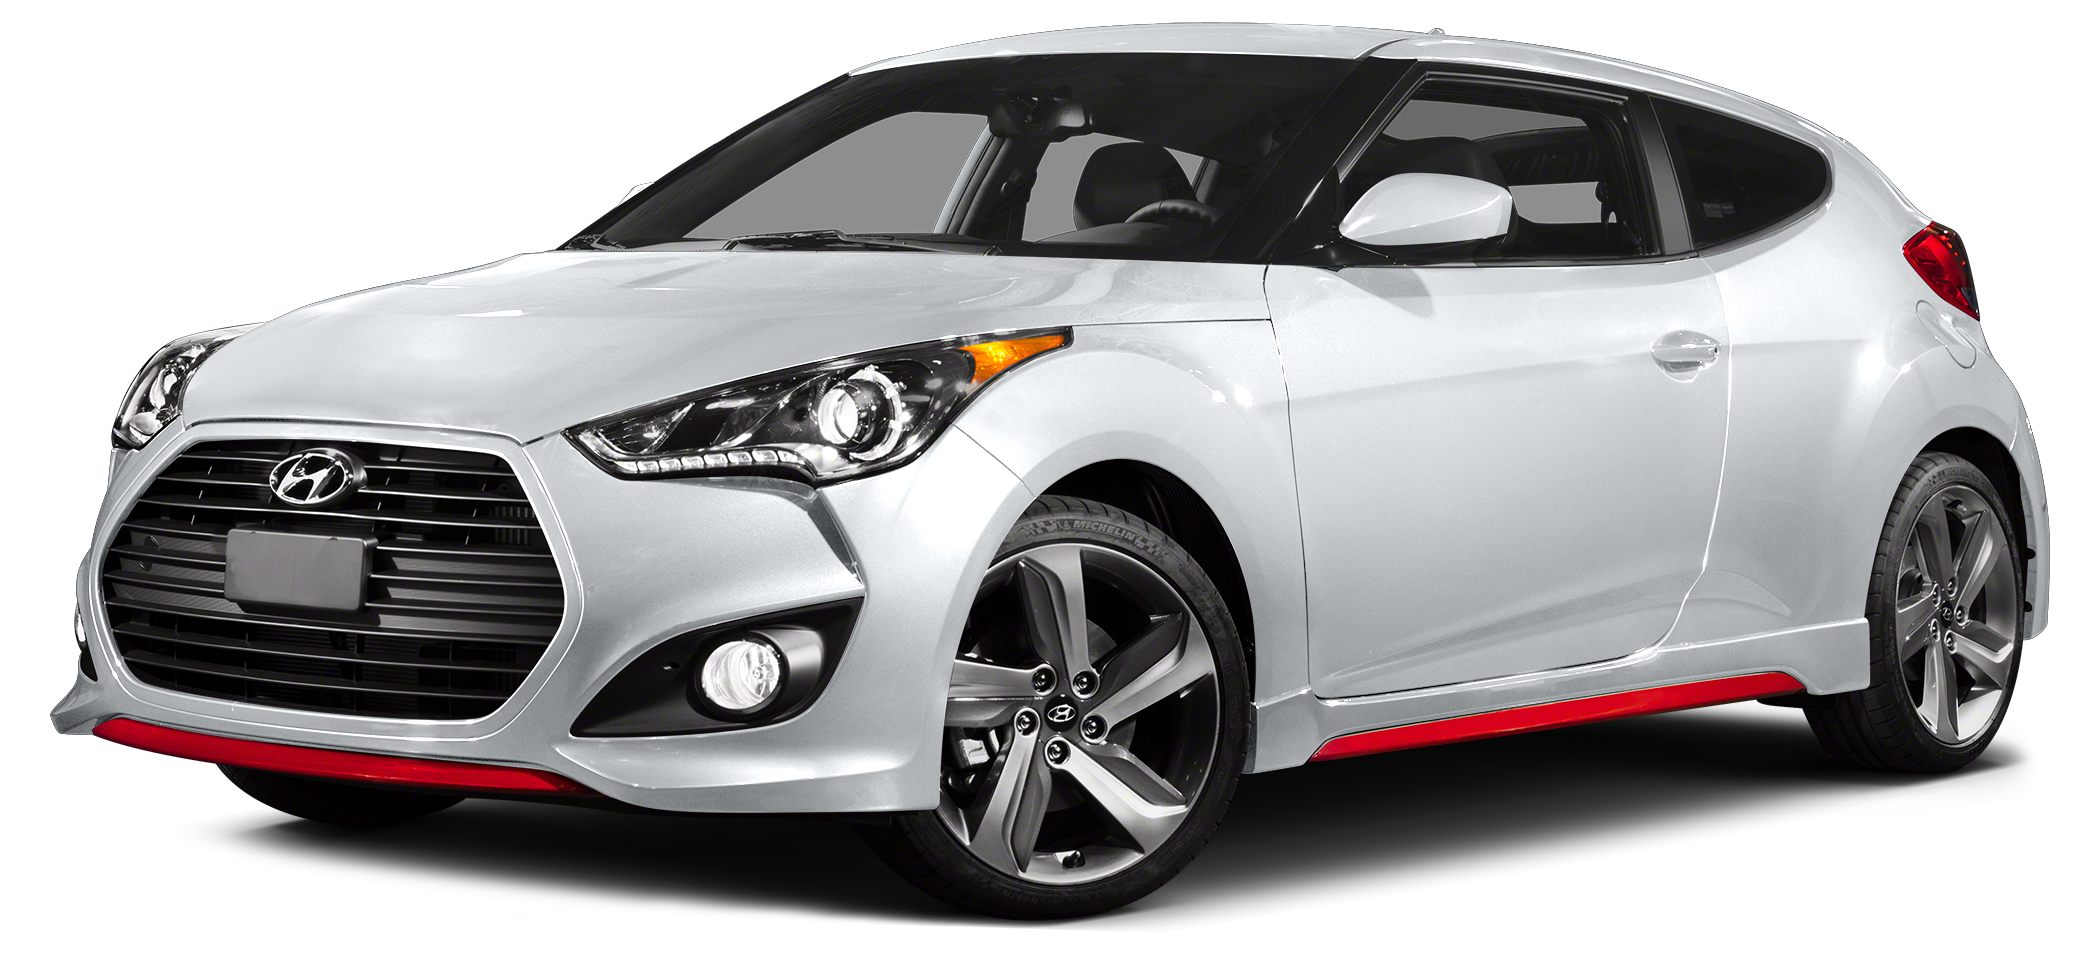 2014 Hyundai Veloster Turbo R-Spec Step into the 2014 Hyundai Veloster It delivers plenty of powe